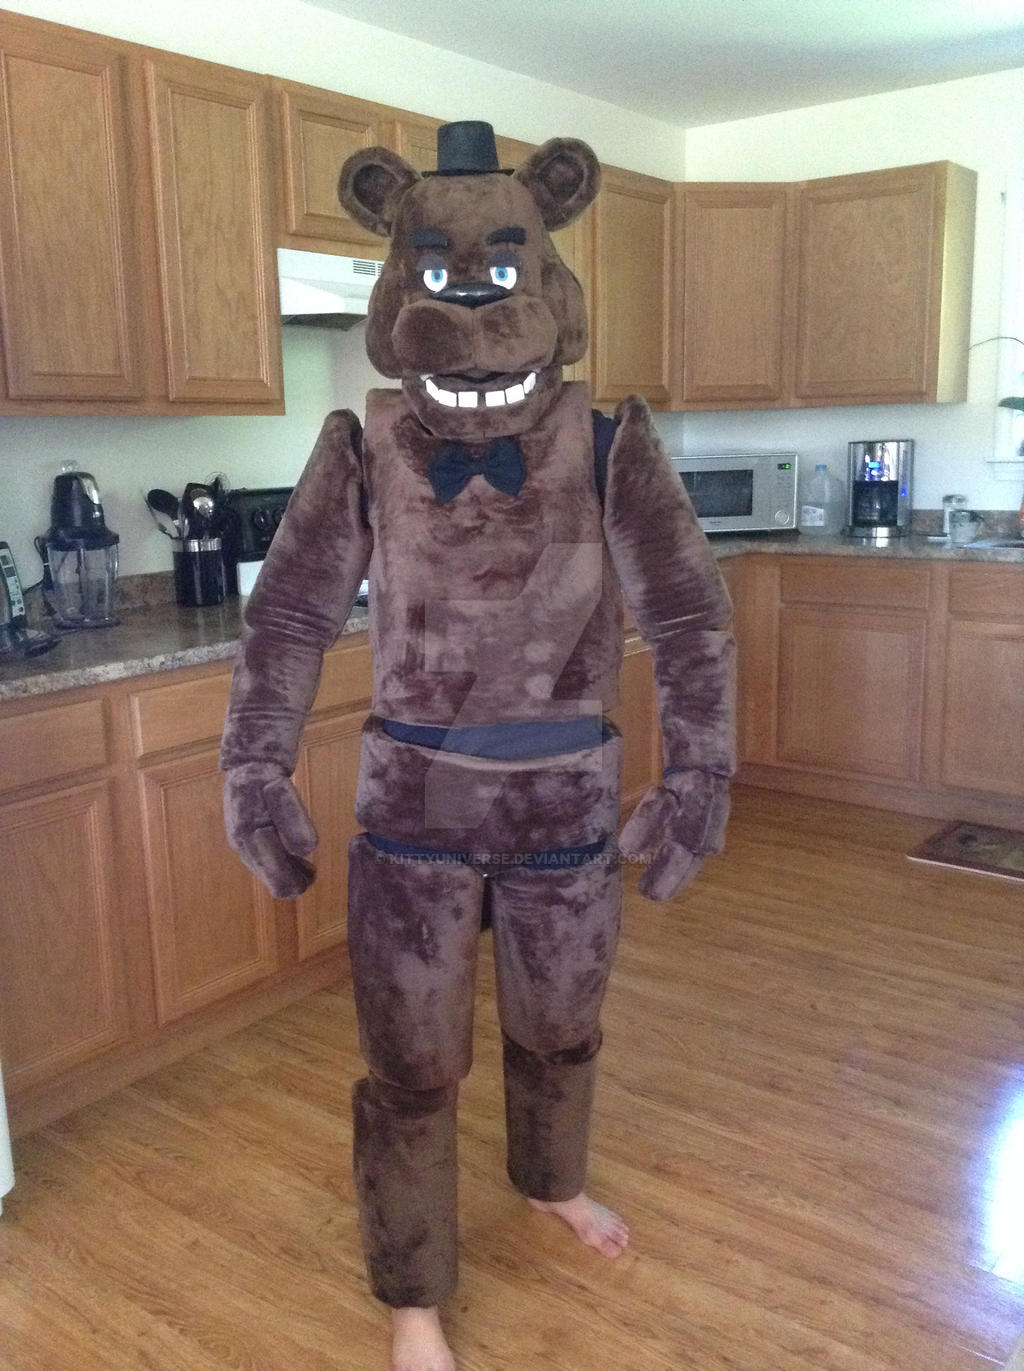 freddy fazbear costume by kittyuniverse freddy fazbear costume by kittyuniverse